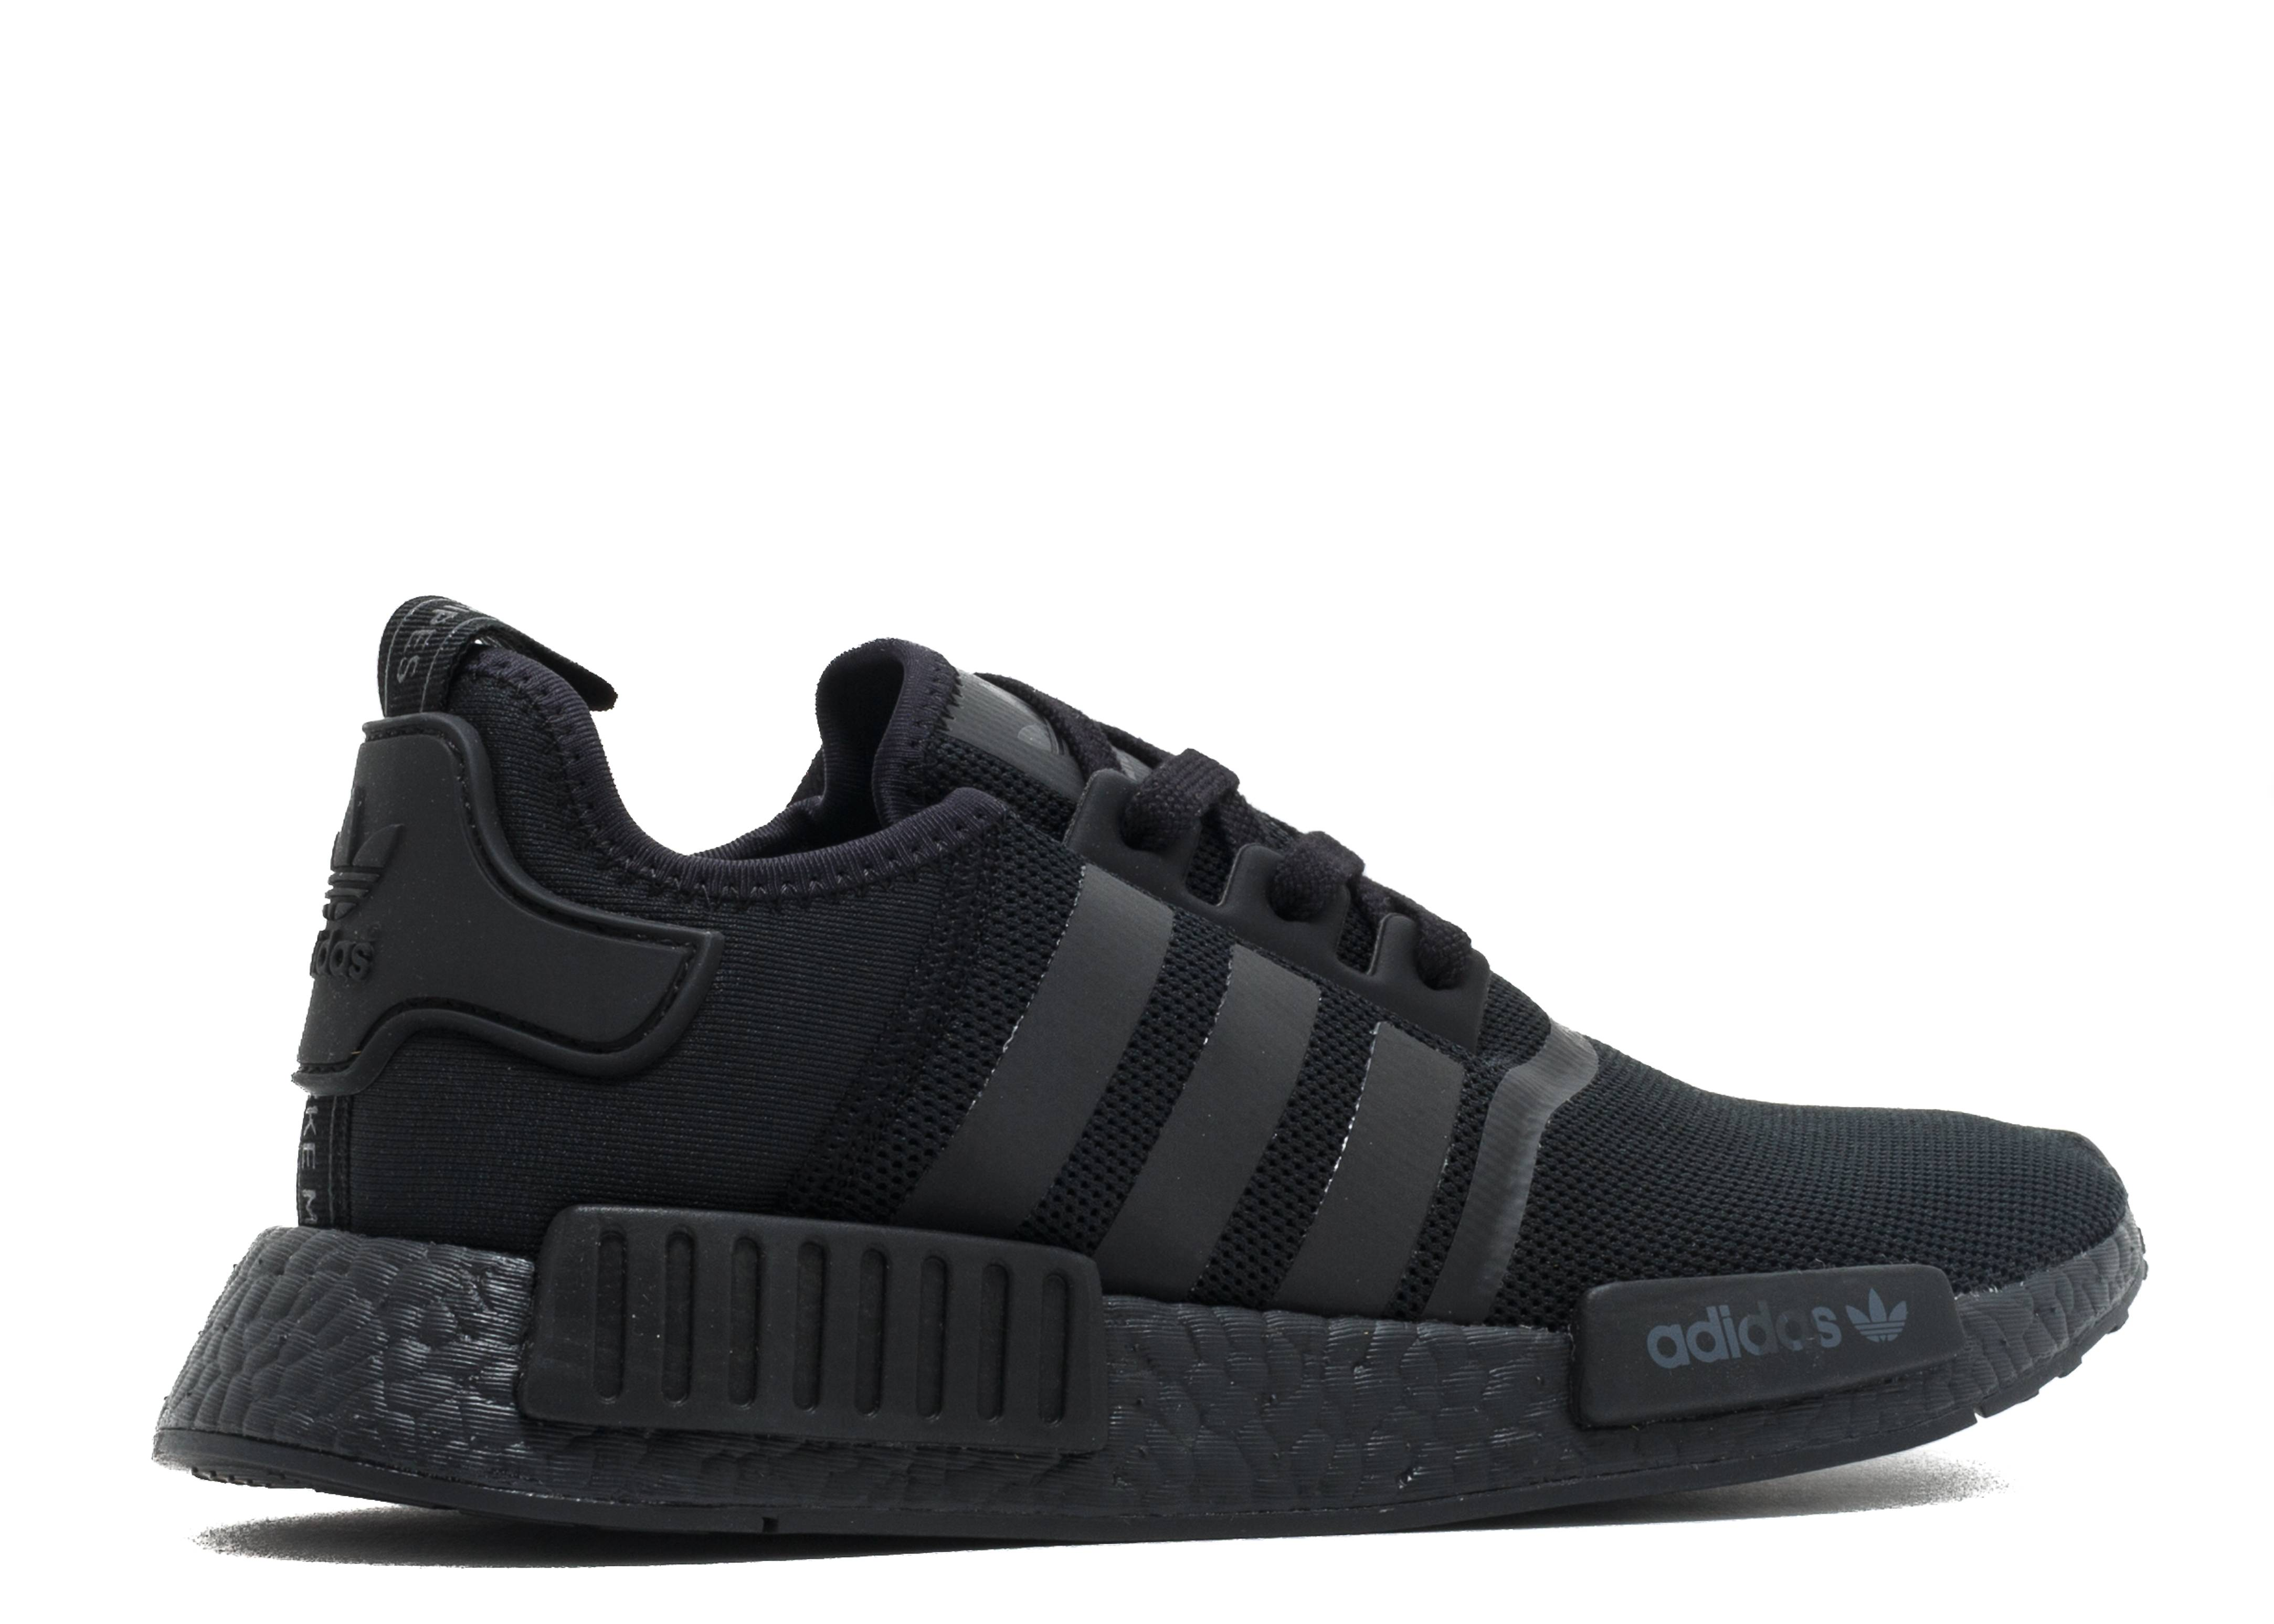 e46368fc3 Footaction on Twitter   The black  adidas NMD R1 Primeknit  Gum